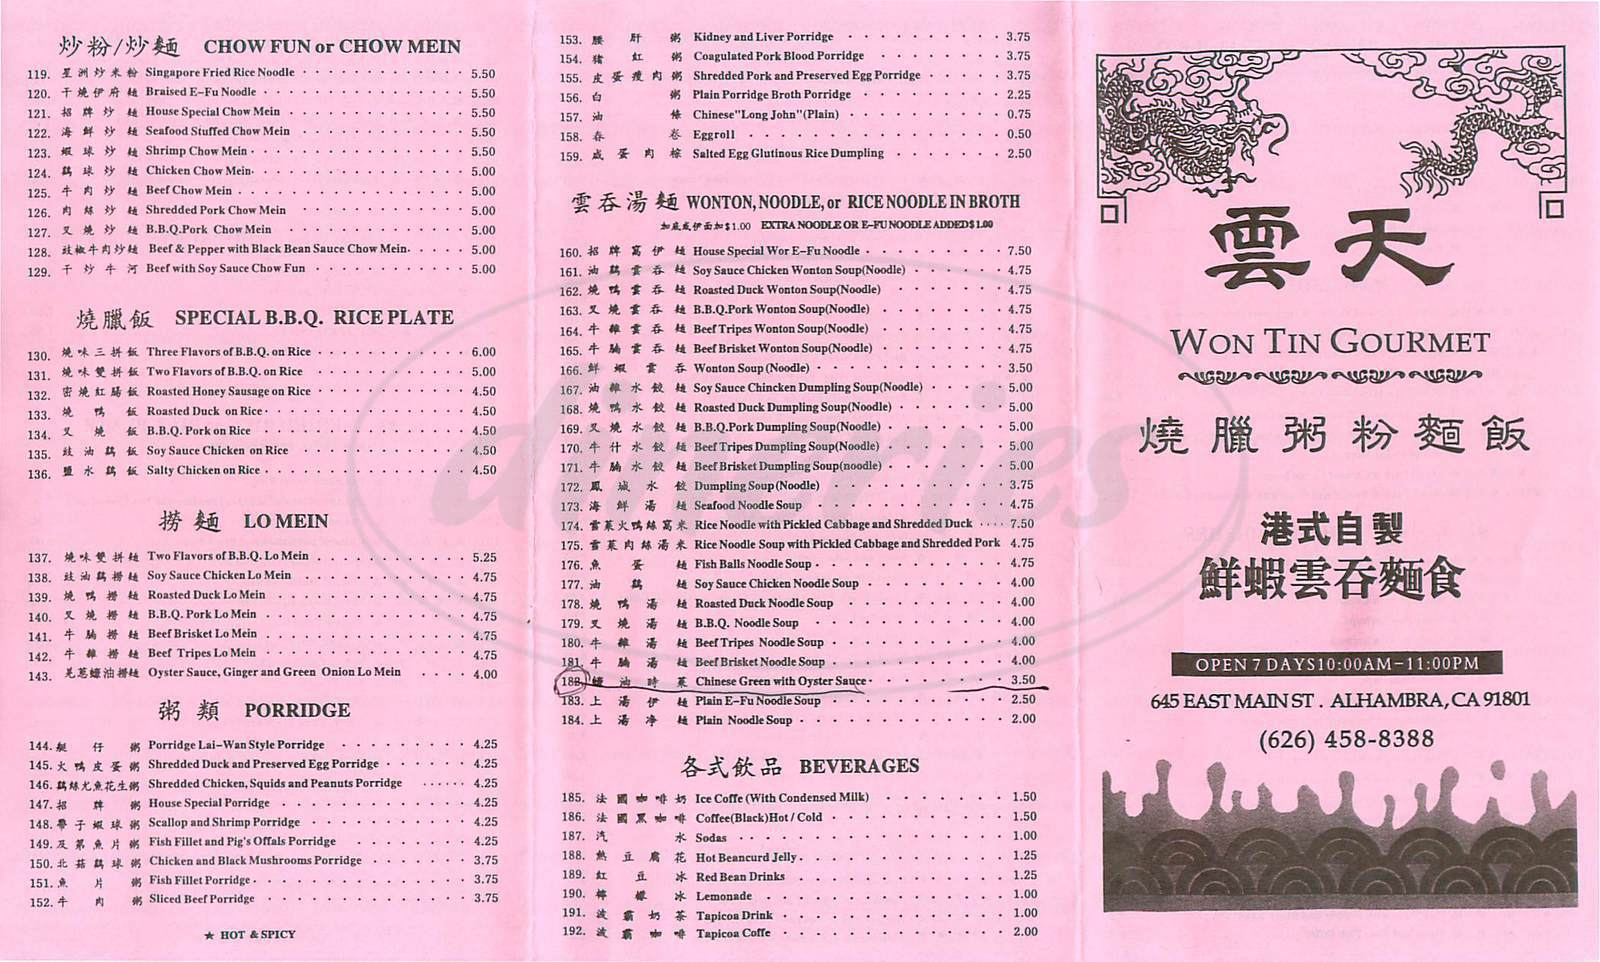 menu for Won Tin Gourmet